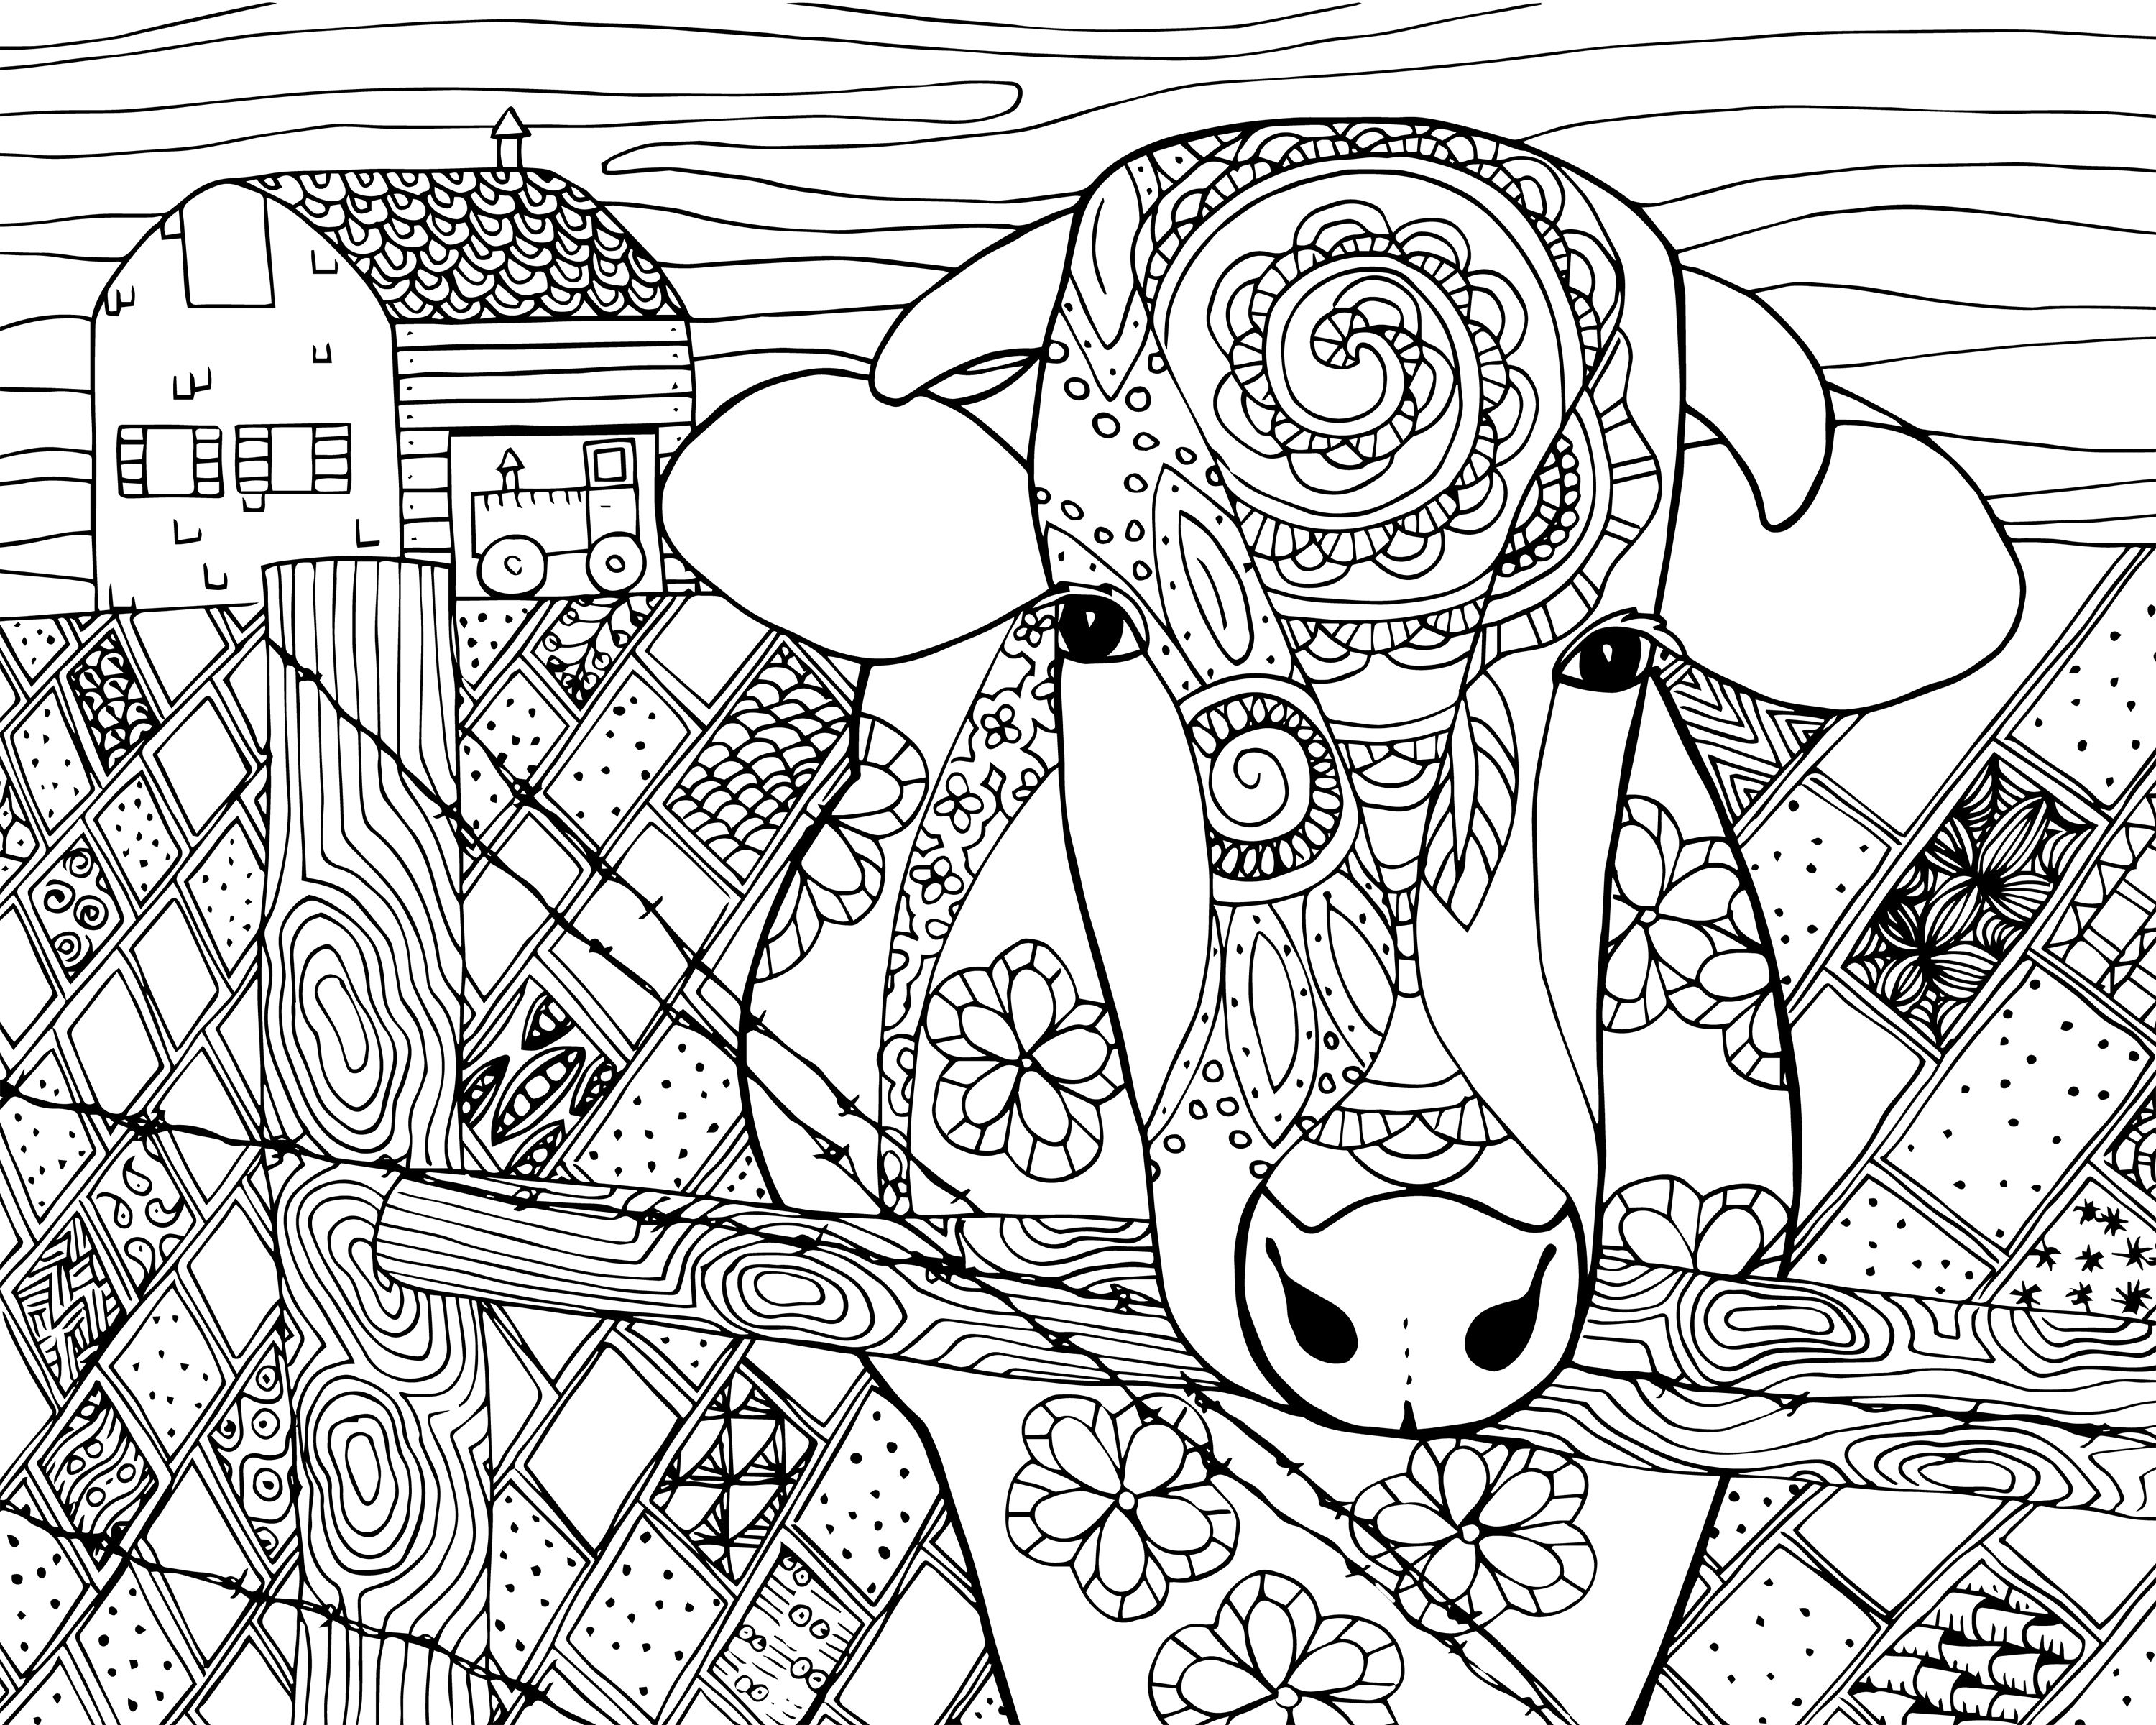 3000x2400 Free Coloring Pages Adults Woman Flowers Zen And Anti Stress